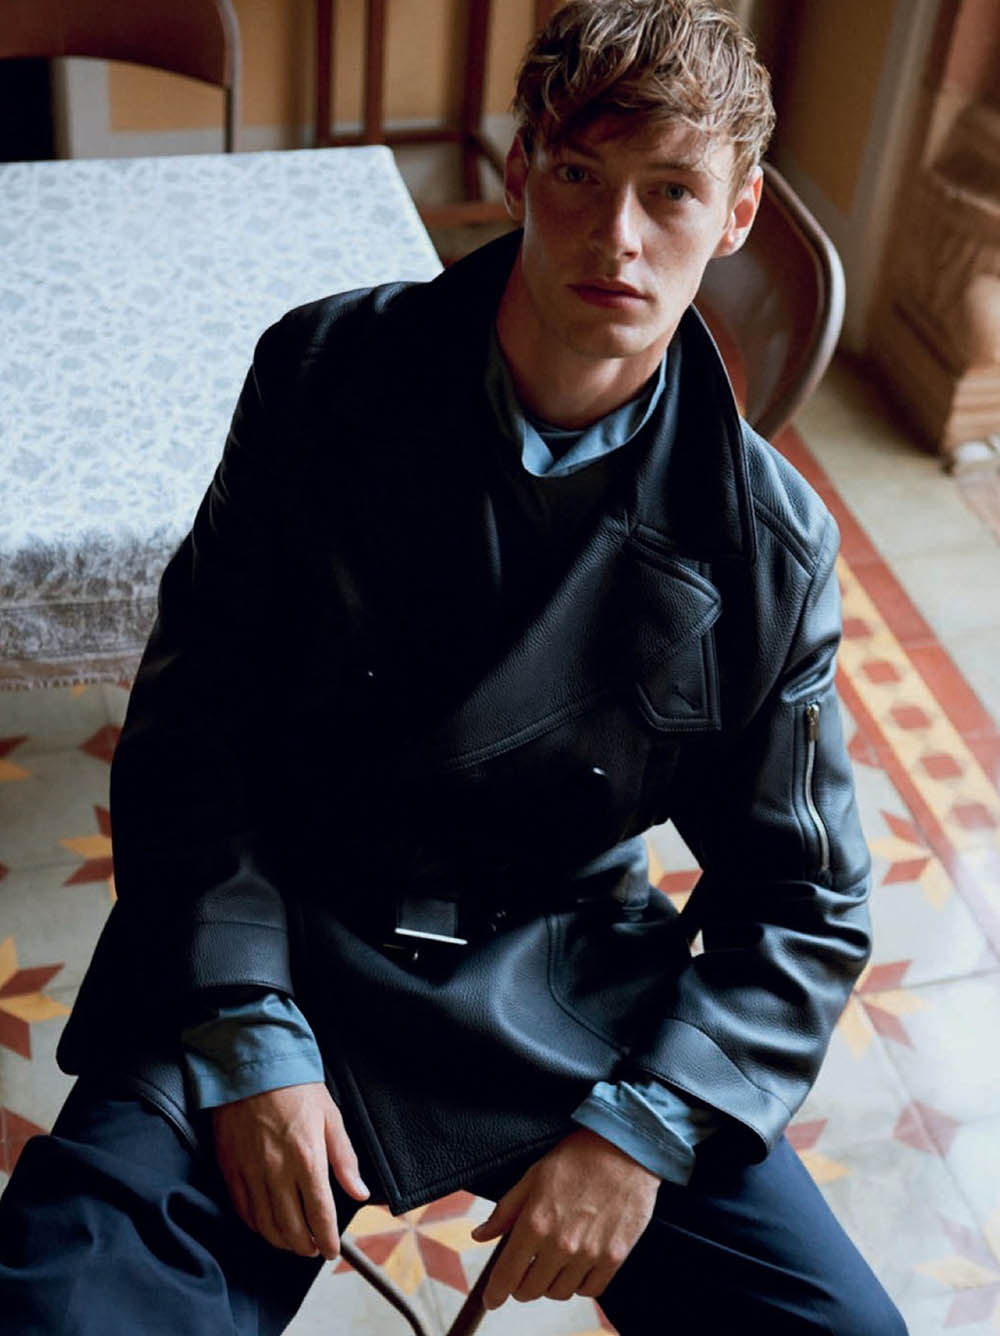 Roberto Sipos by Yago Castromil for GQ Spain October 2019